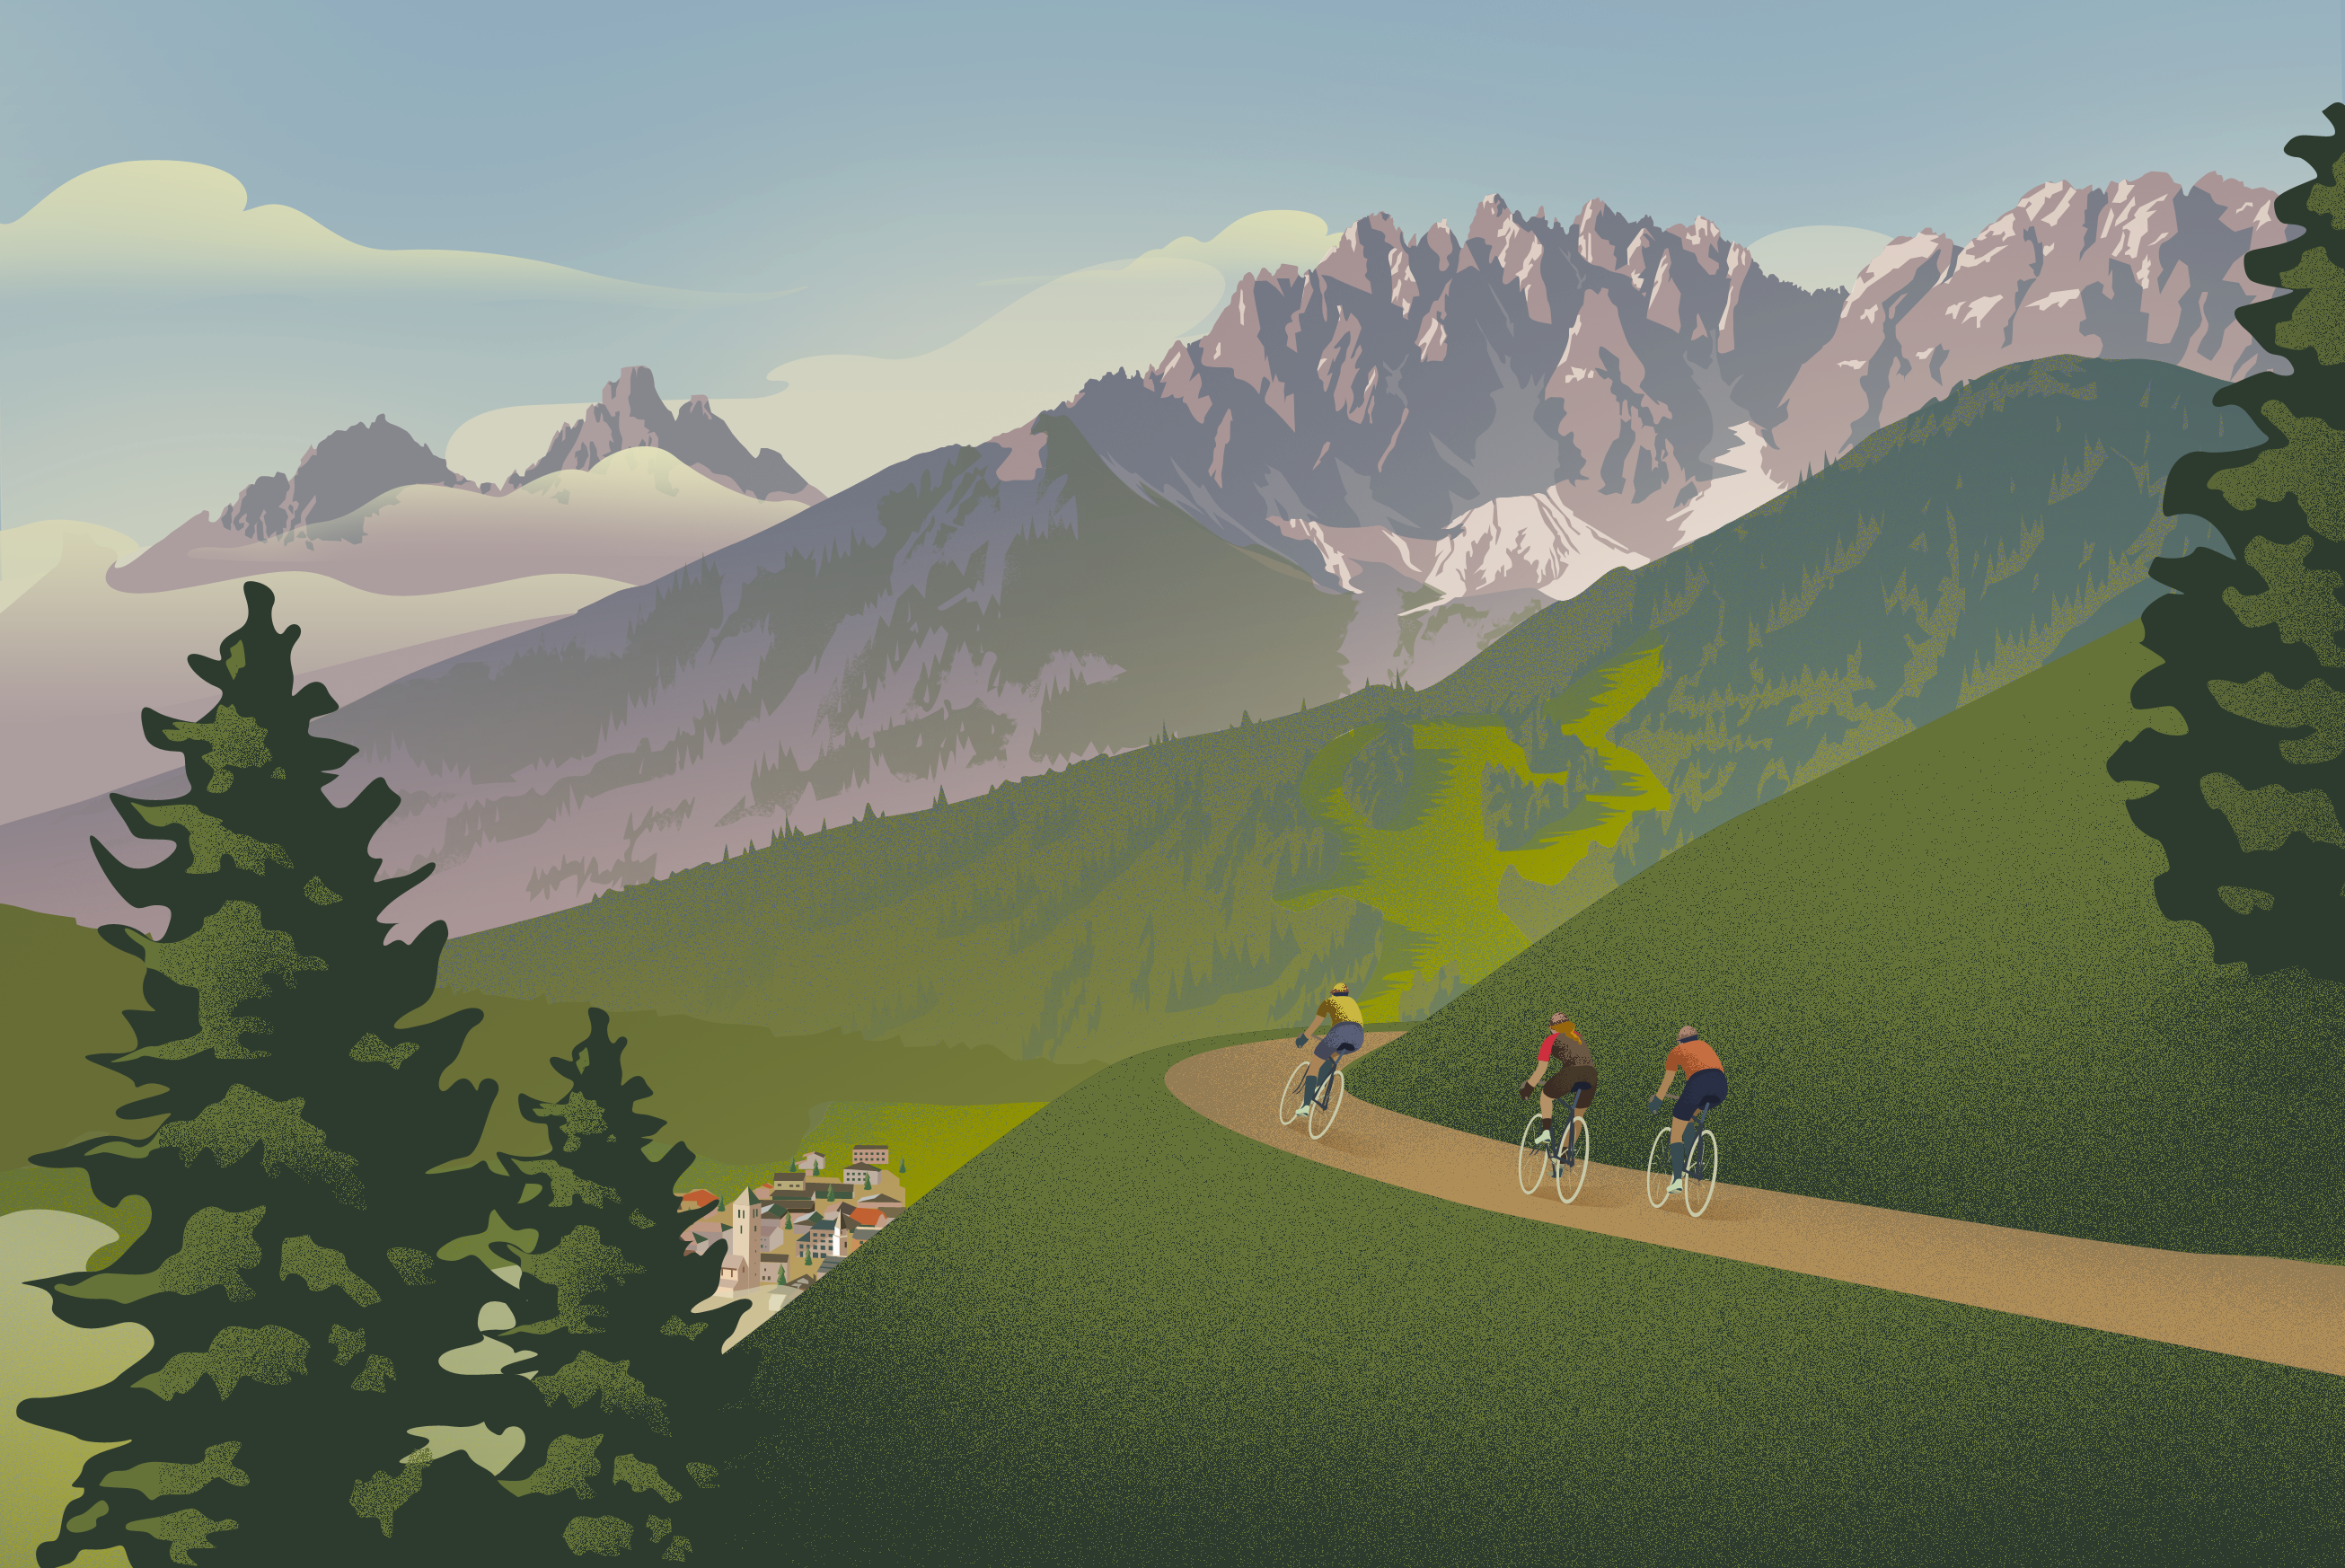 Poster for Eroica Dolomiti, Vintage Cycling Event